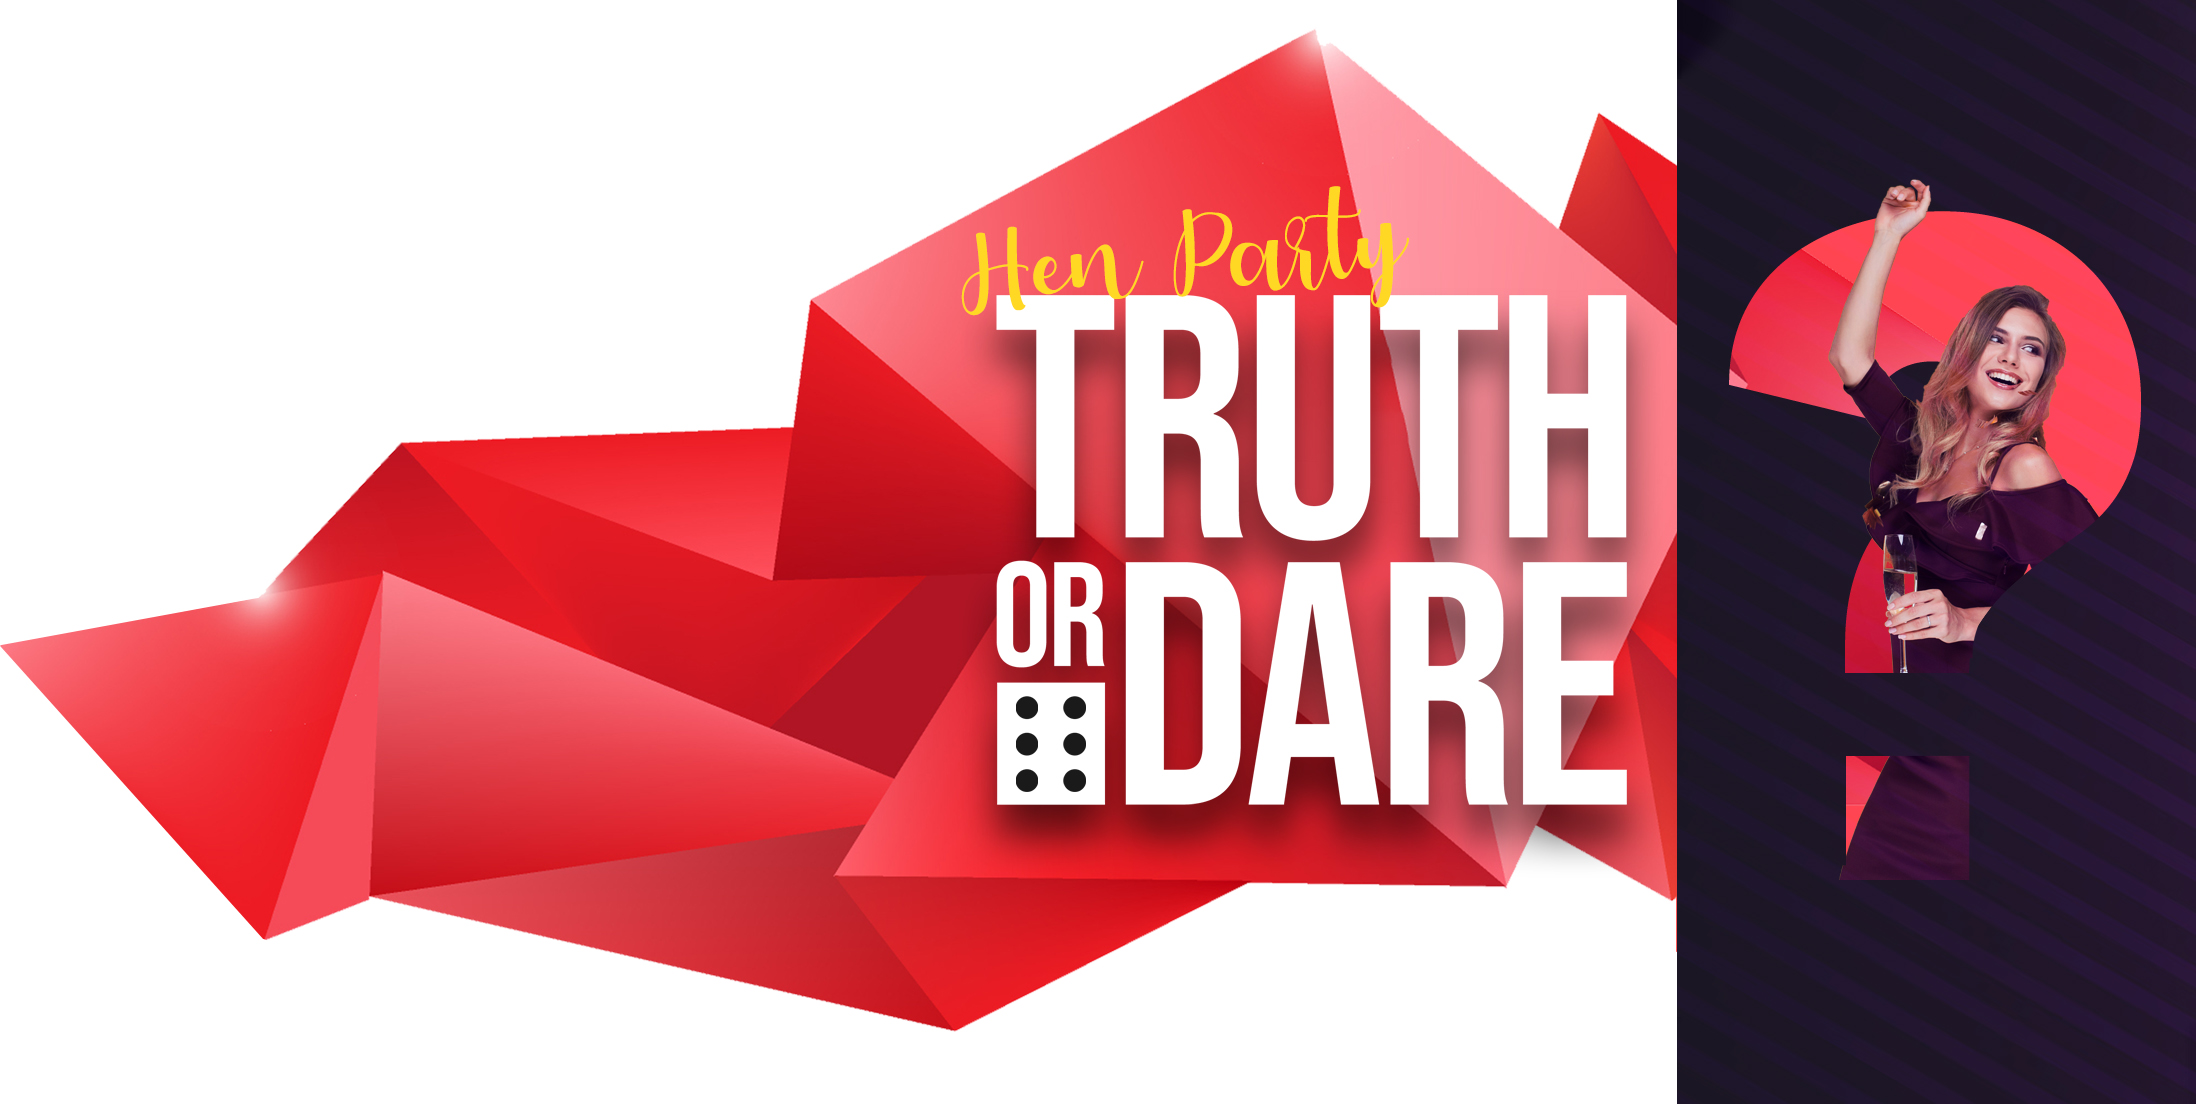 Hen Party Truth or Dare